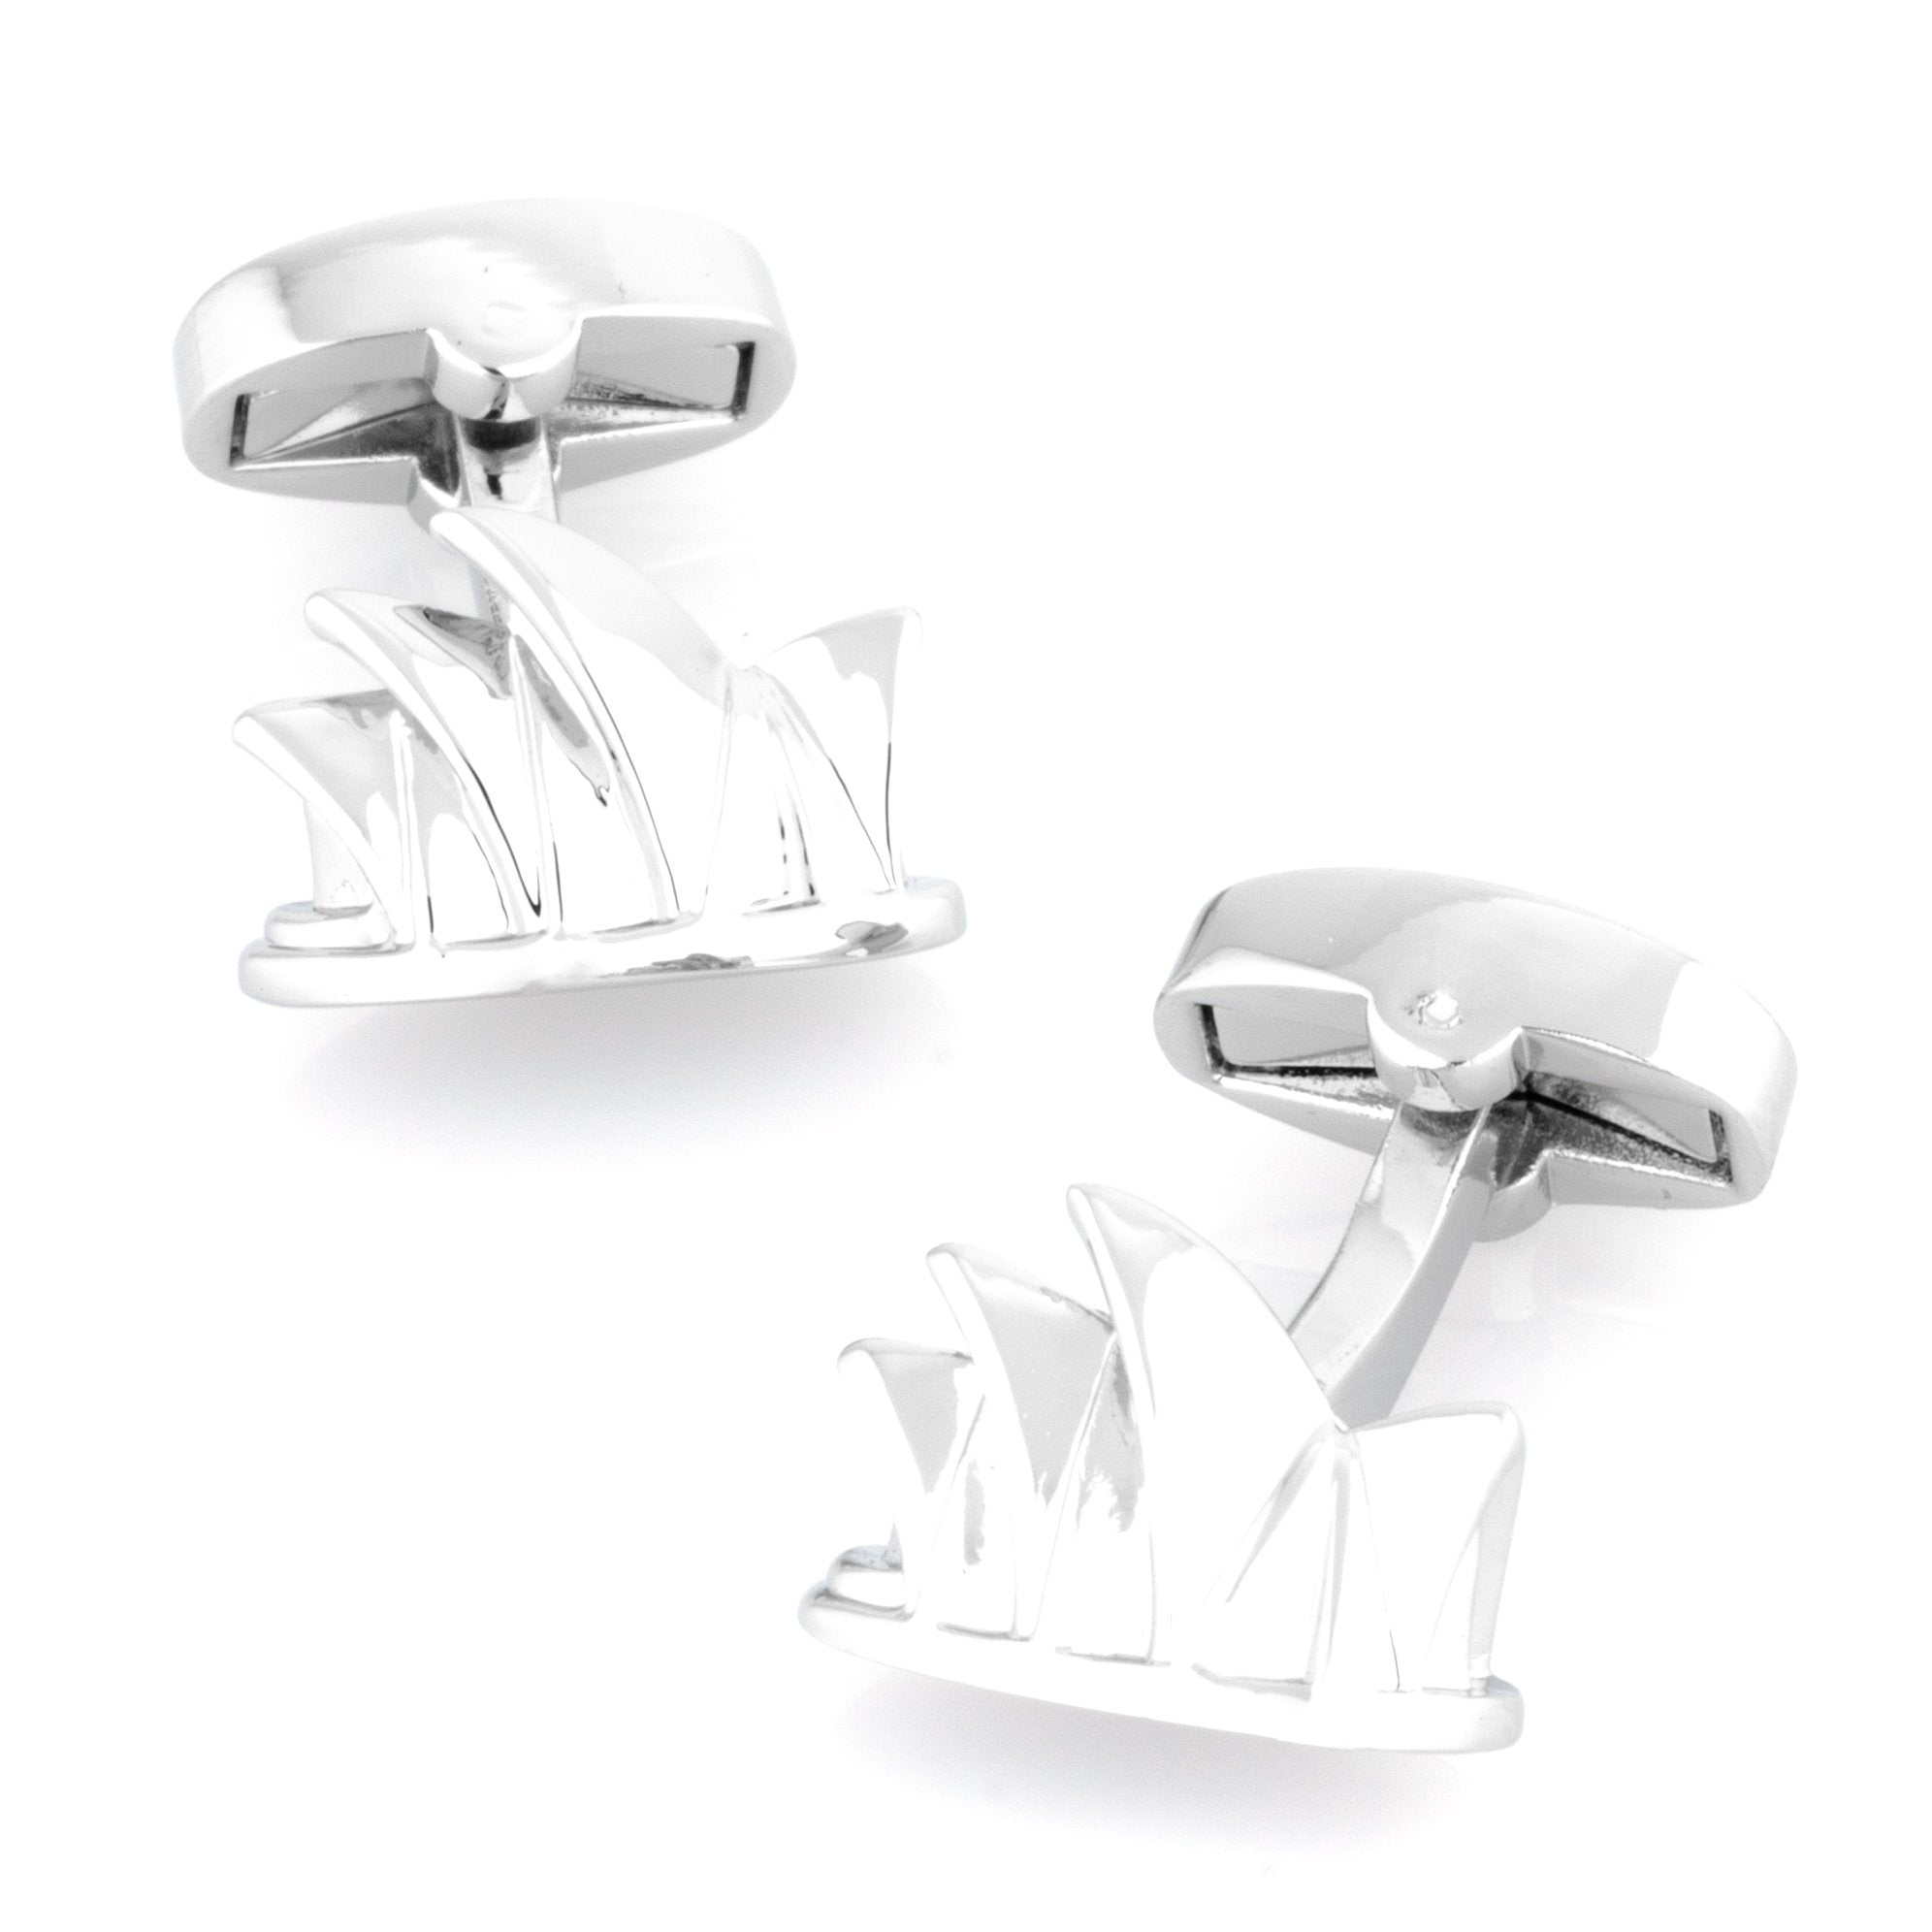 Sydney Opera House Cufflinks Novelty Cufflinks Clinks Australia Sydney Opera House Cufflinks